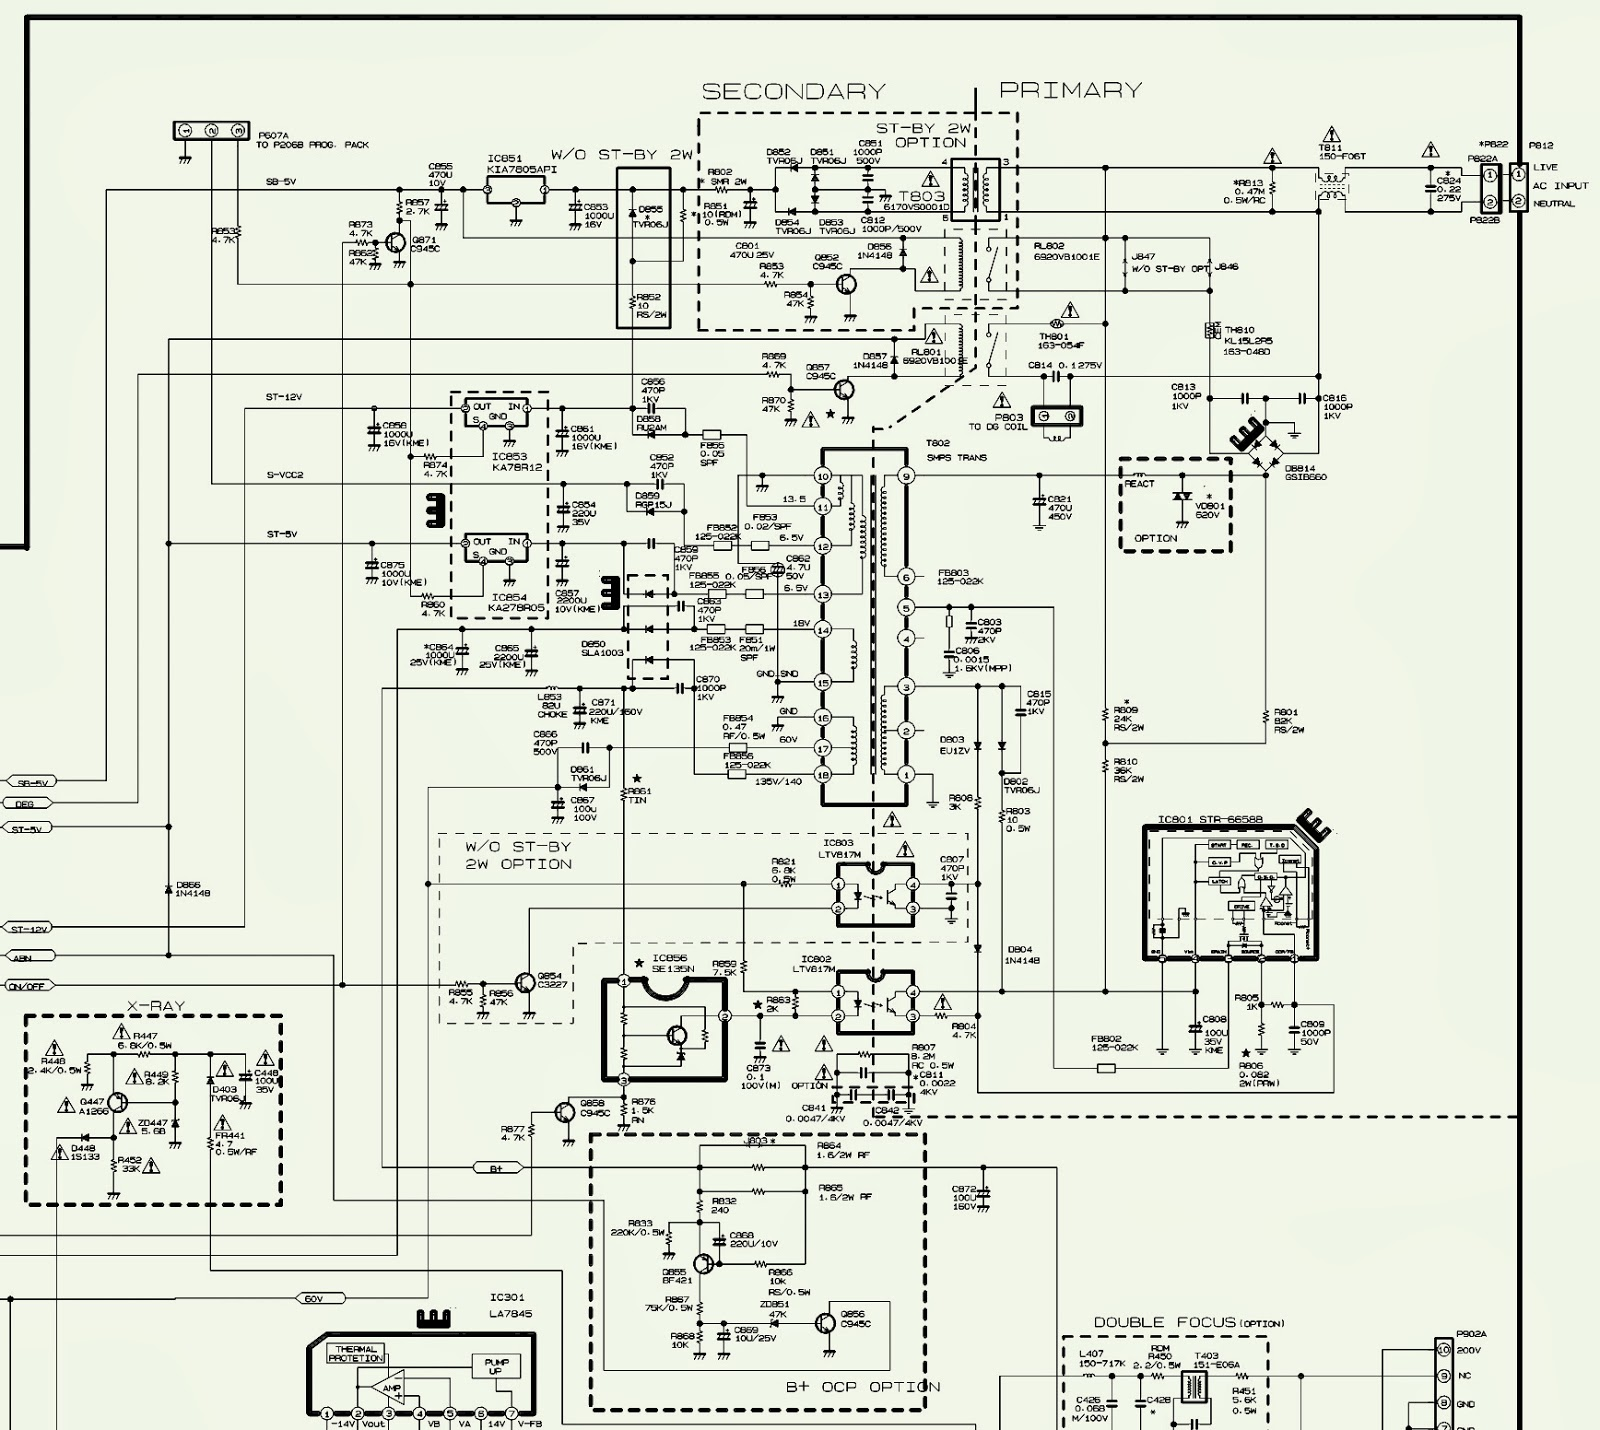 wiring diagram lg tv wiring diagram blogs maytag washer wiring diagram wiring diagram lg tv [ 1600 x 1430 Pixel ]